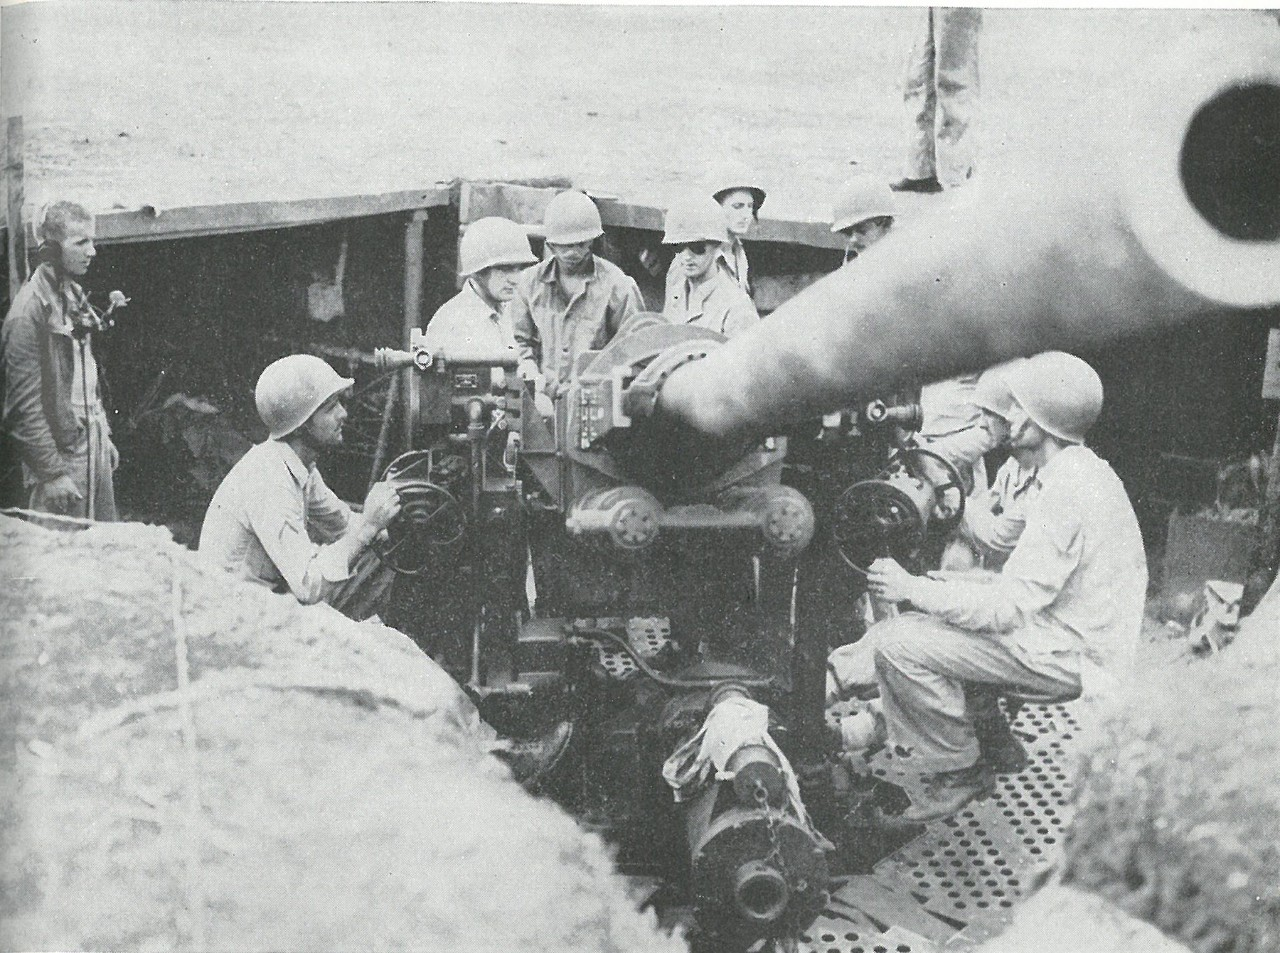 ANTIAIRCRAFT GUNNERS of the 3d Defense Battalion provided the sole air defense for Henderson Field during the critical hours while U.S. airplanes were grounded.